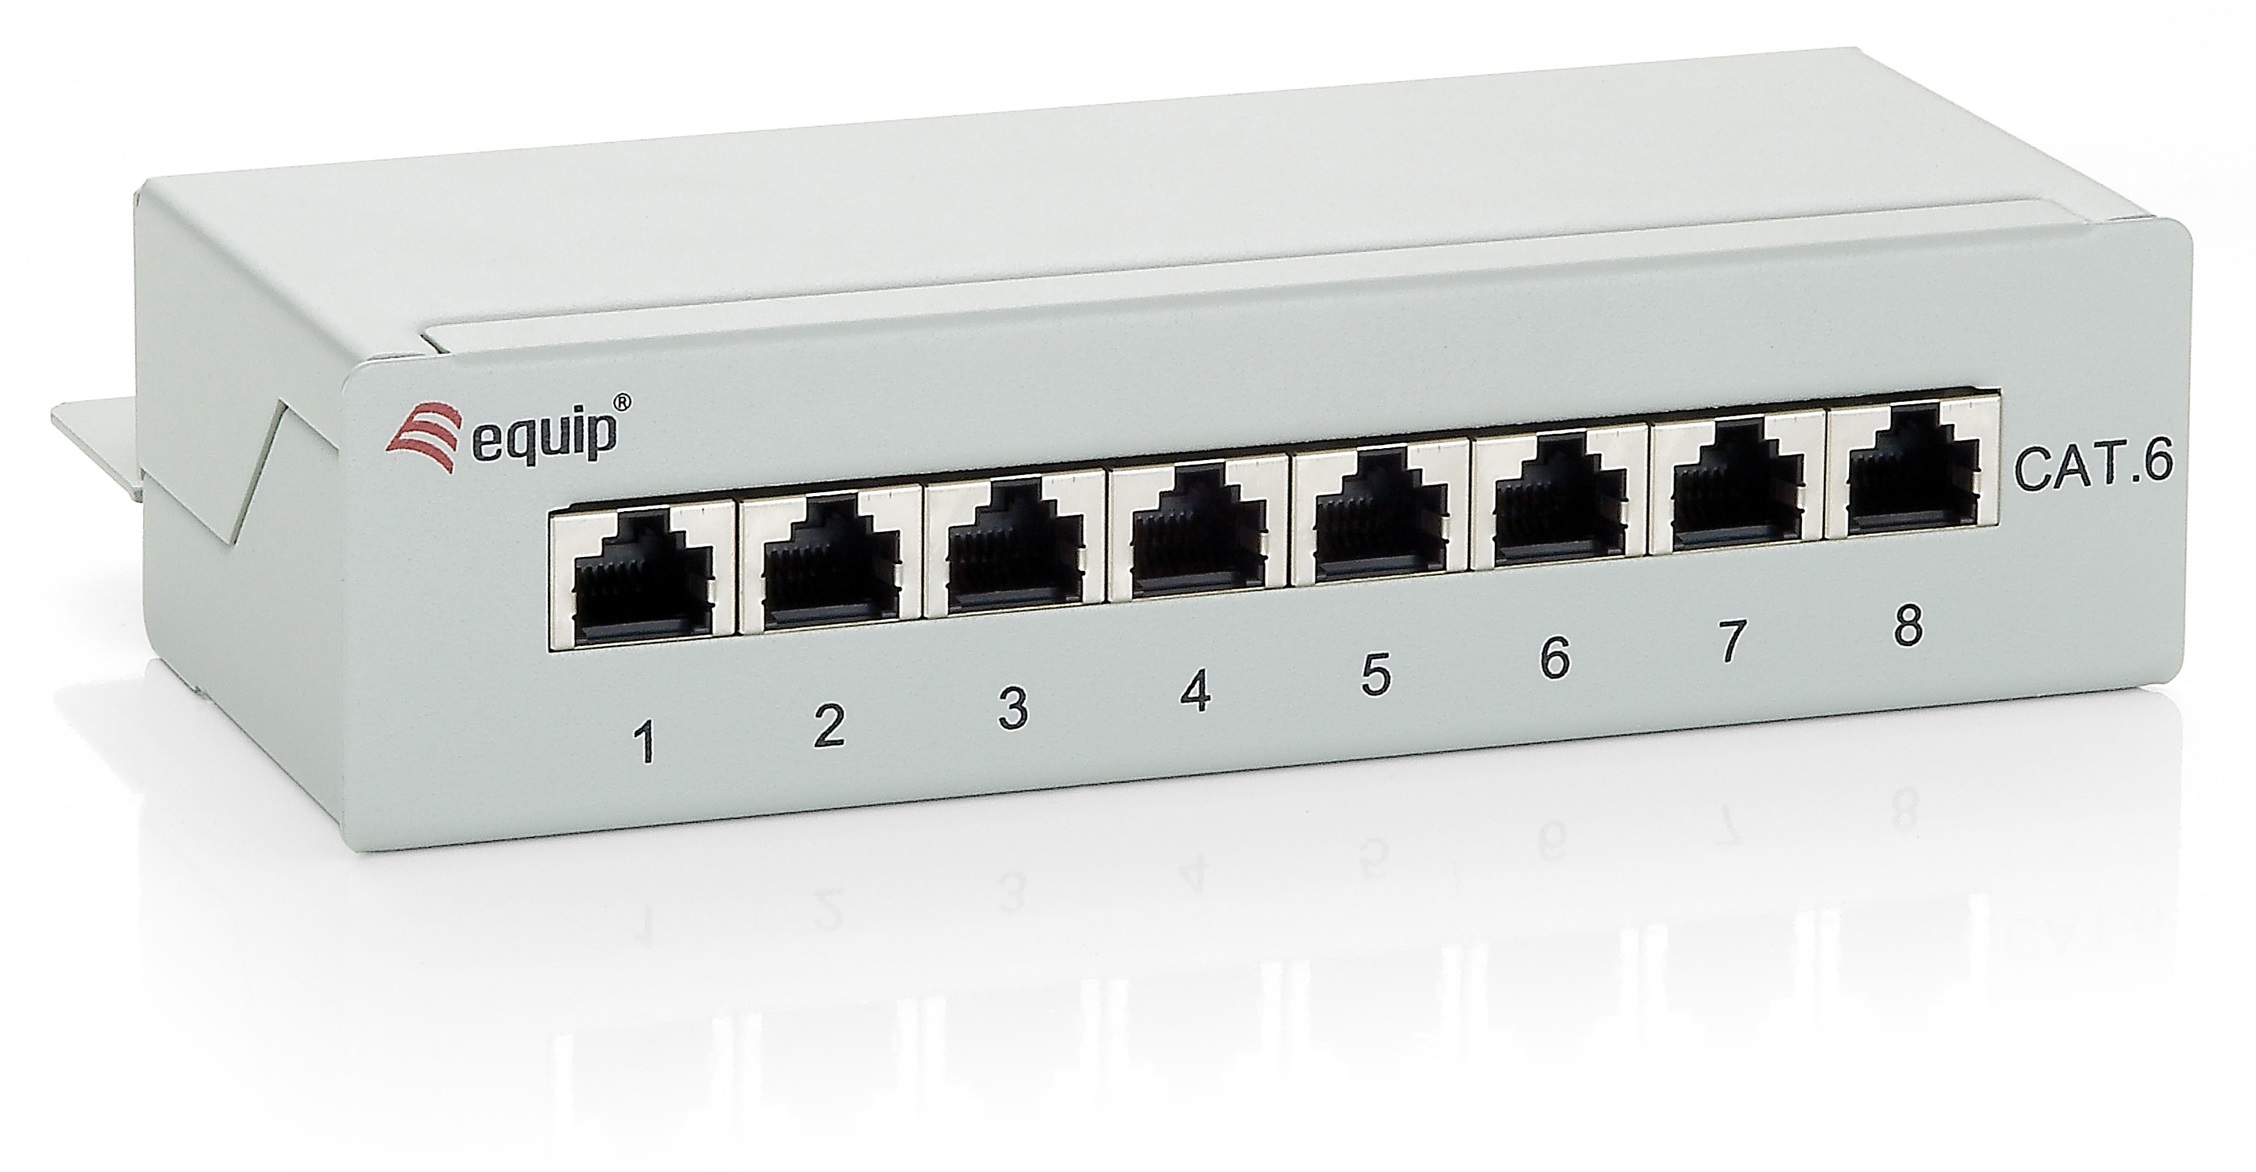 equip 8 x RJ-45 Cat.6 8-Port Patch-Panel - RAL 7.035